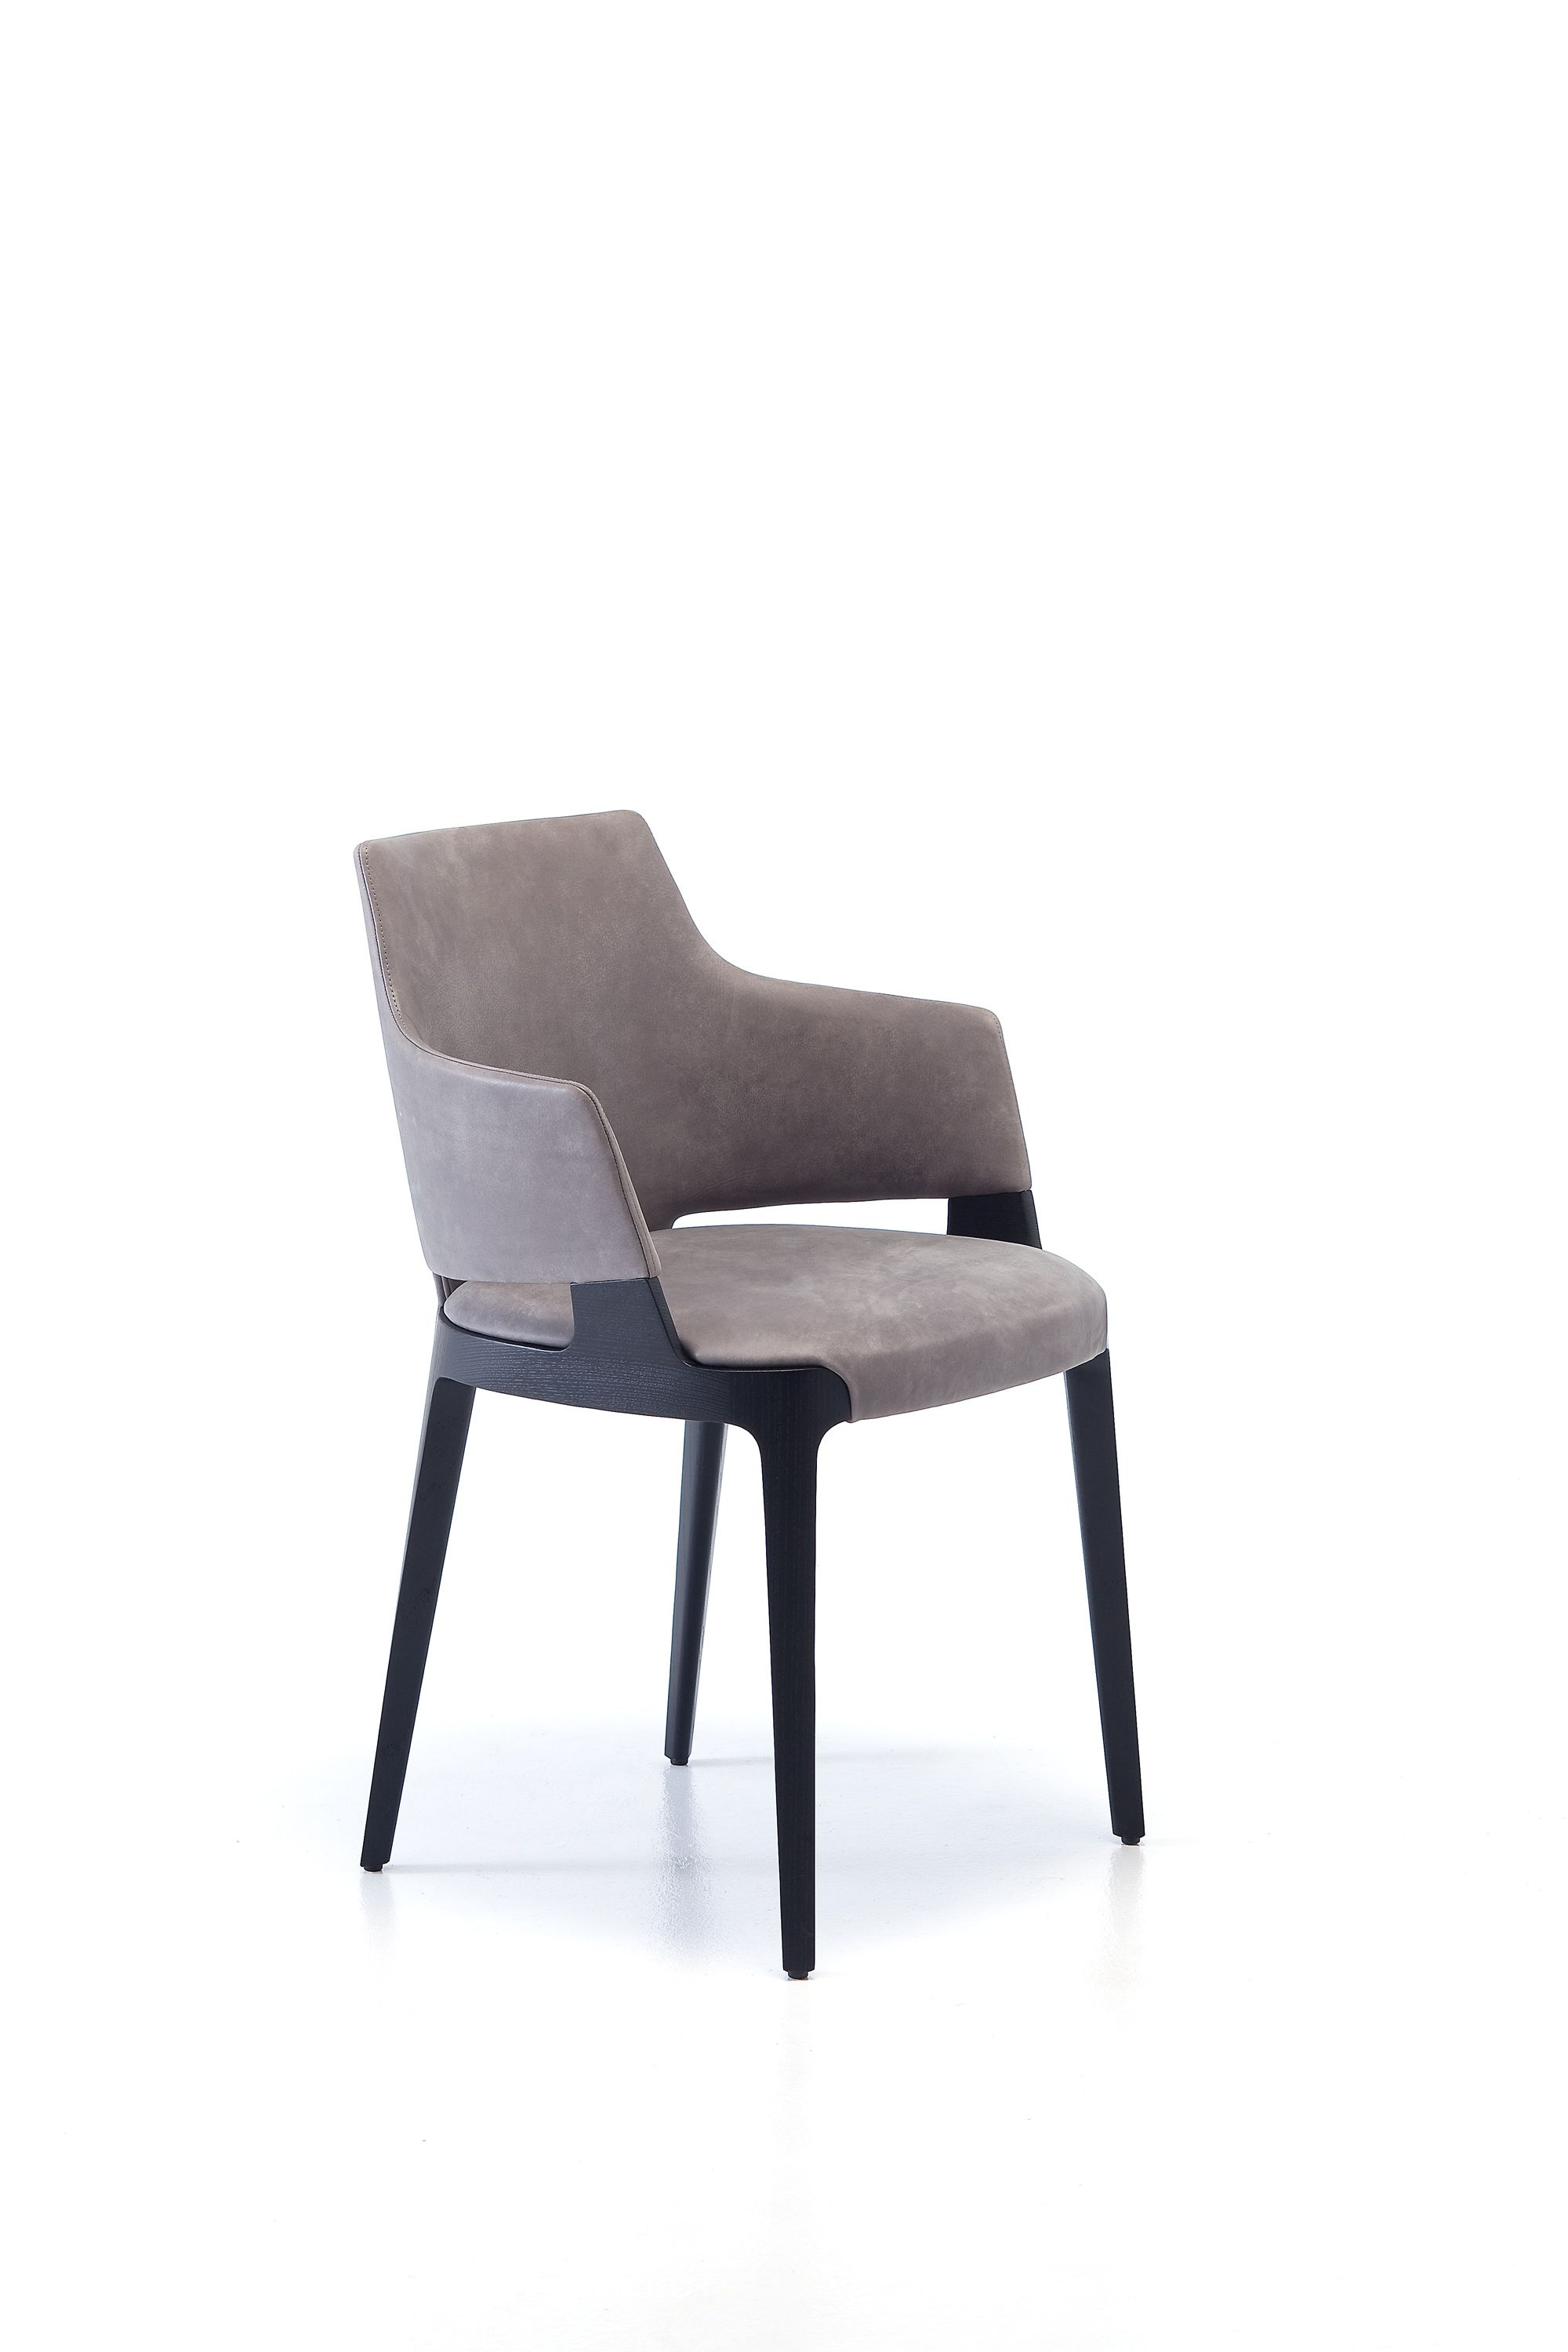 Pin by RELEVANT Furniture on Potocco Chair Velis